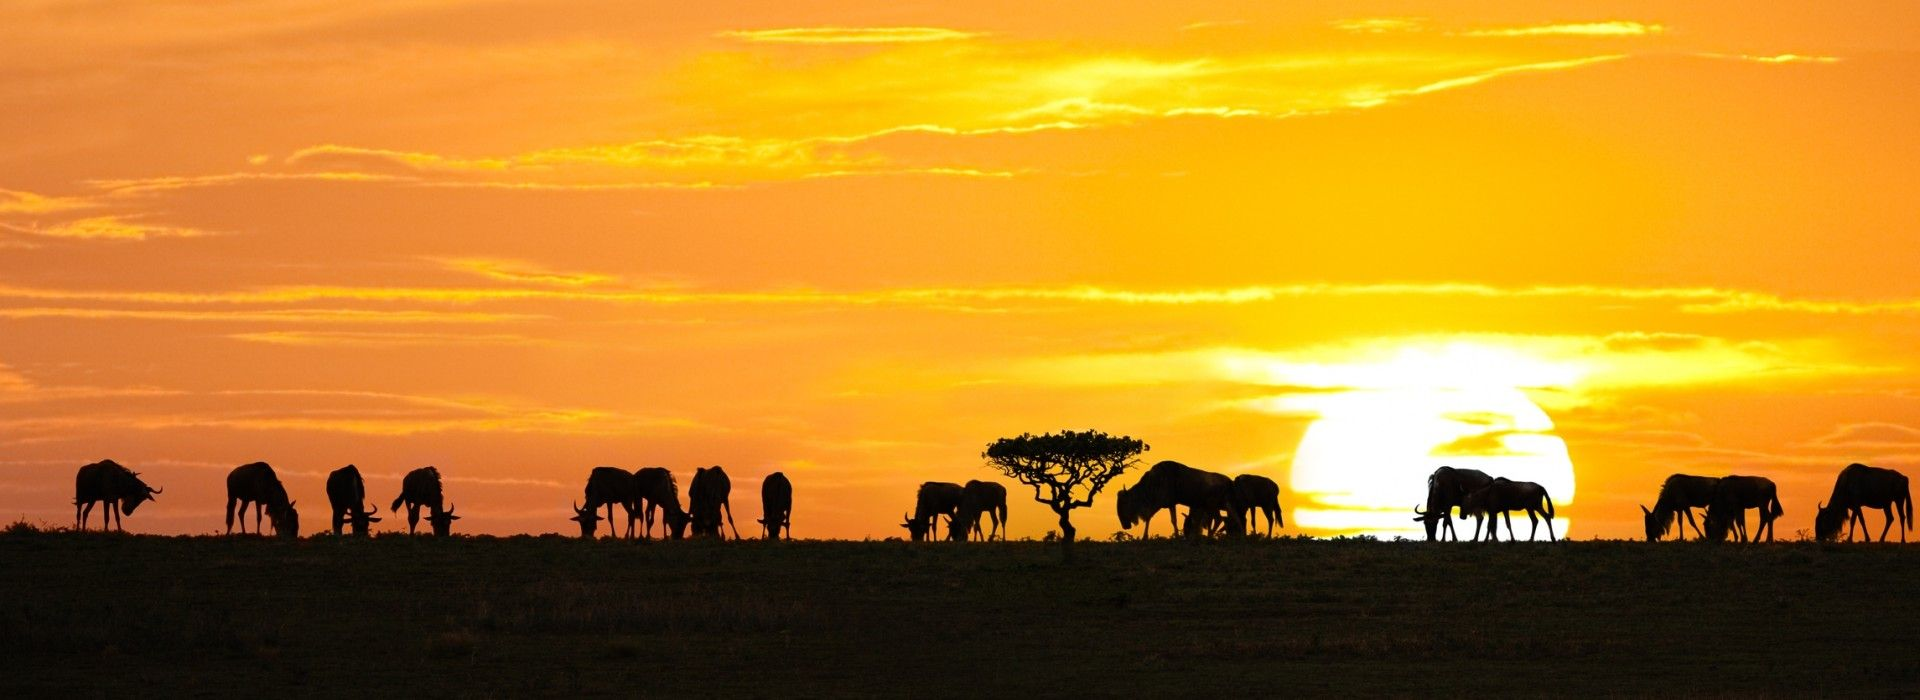 Cultural, religious and historic sites Tours in Tanzania